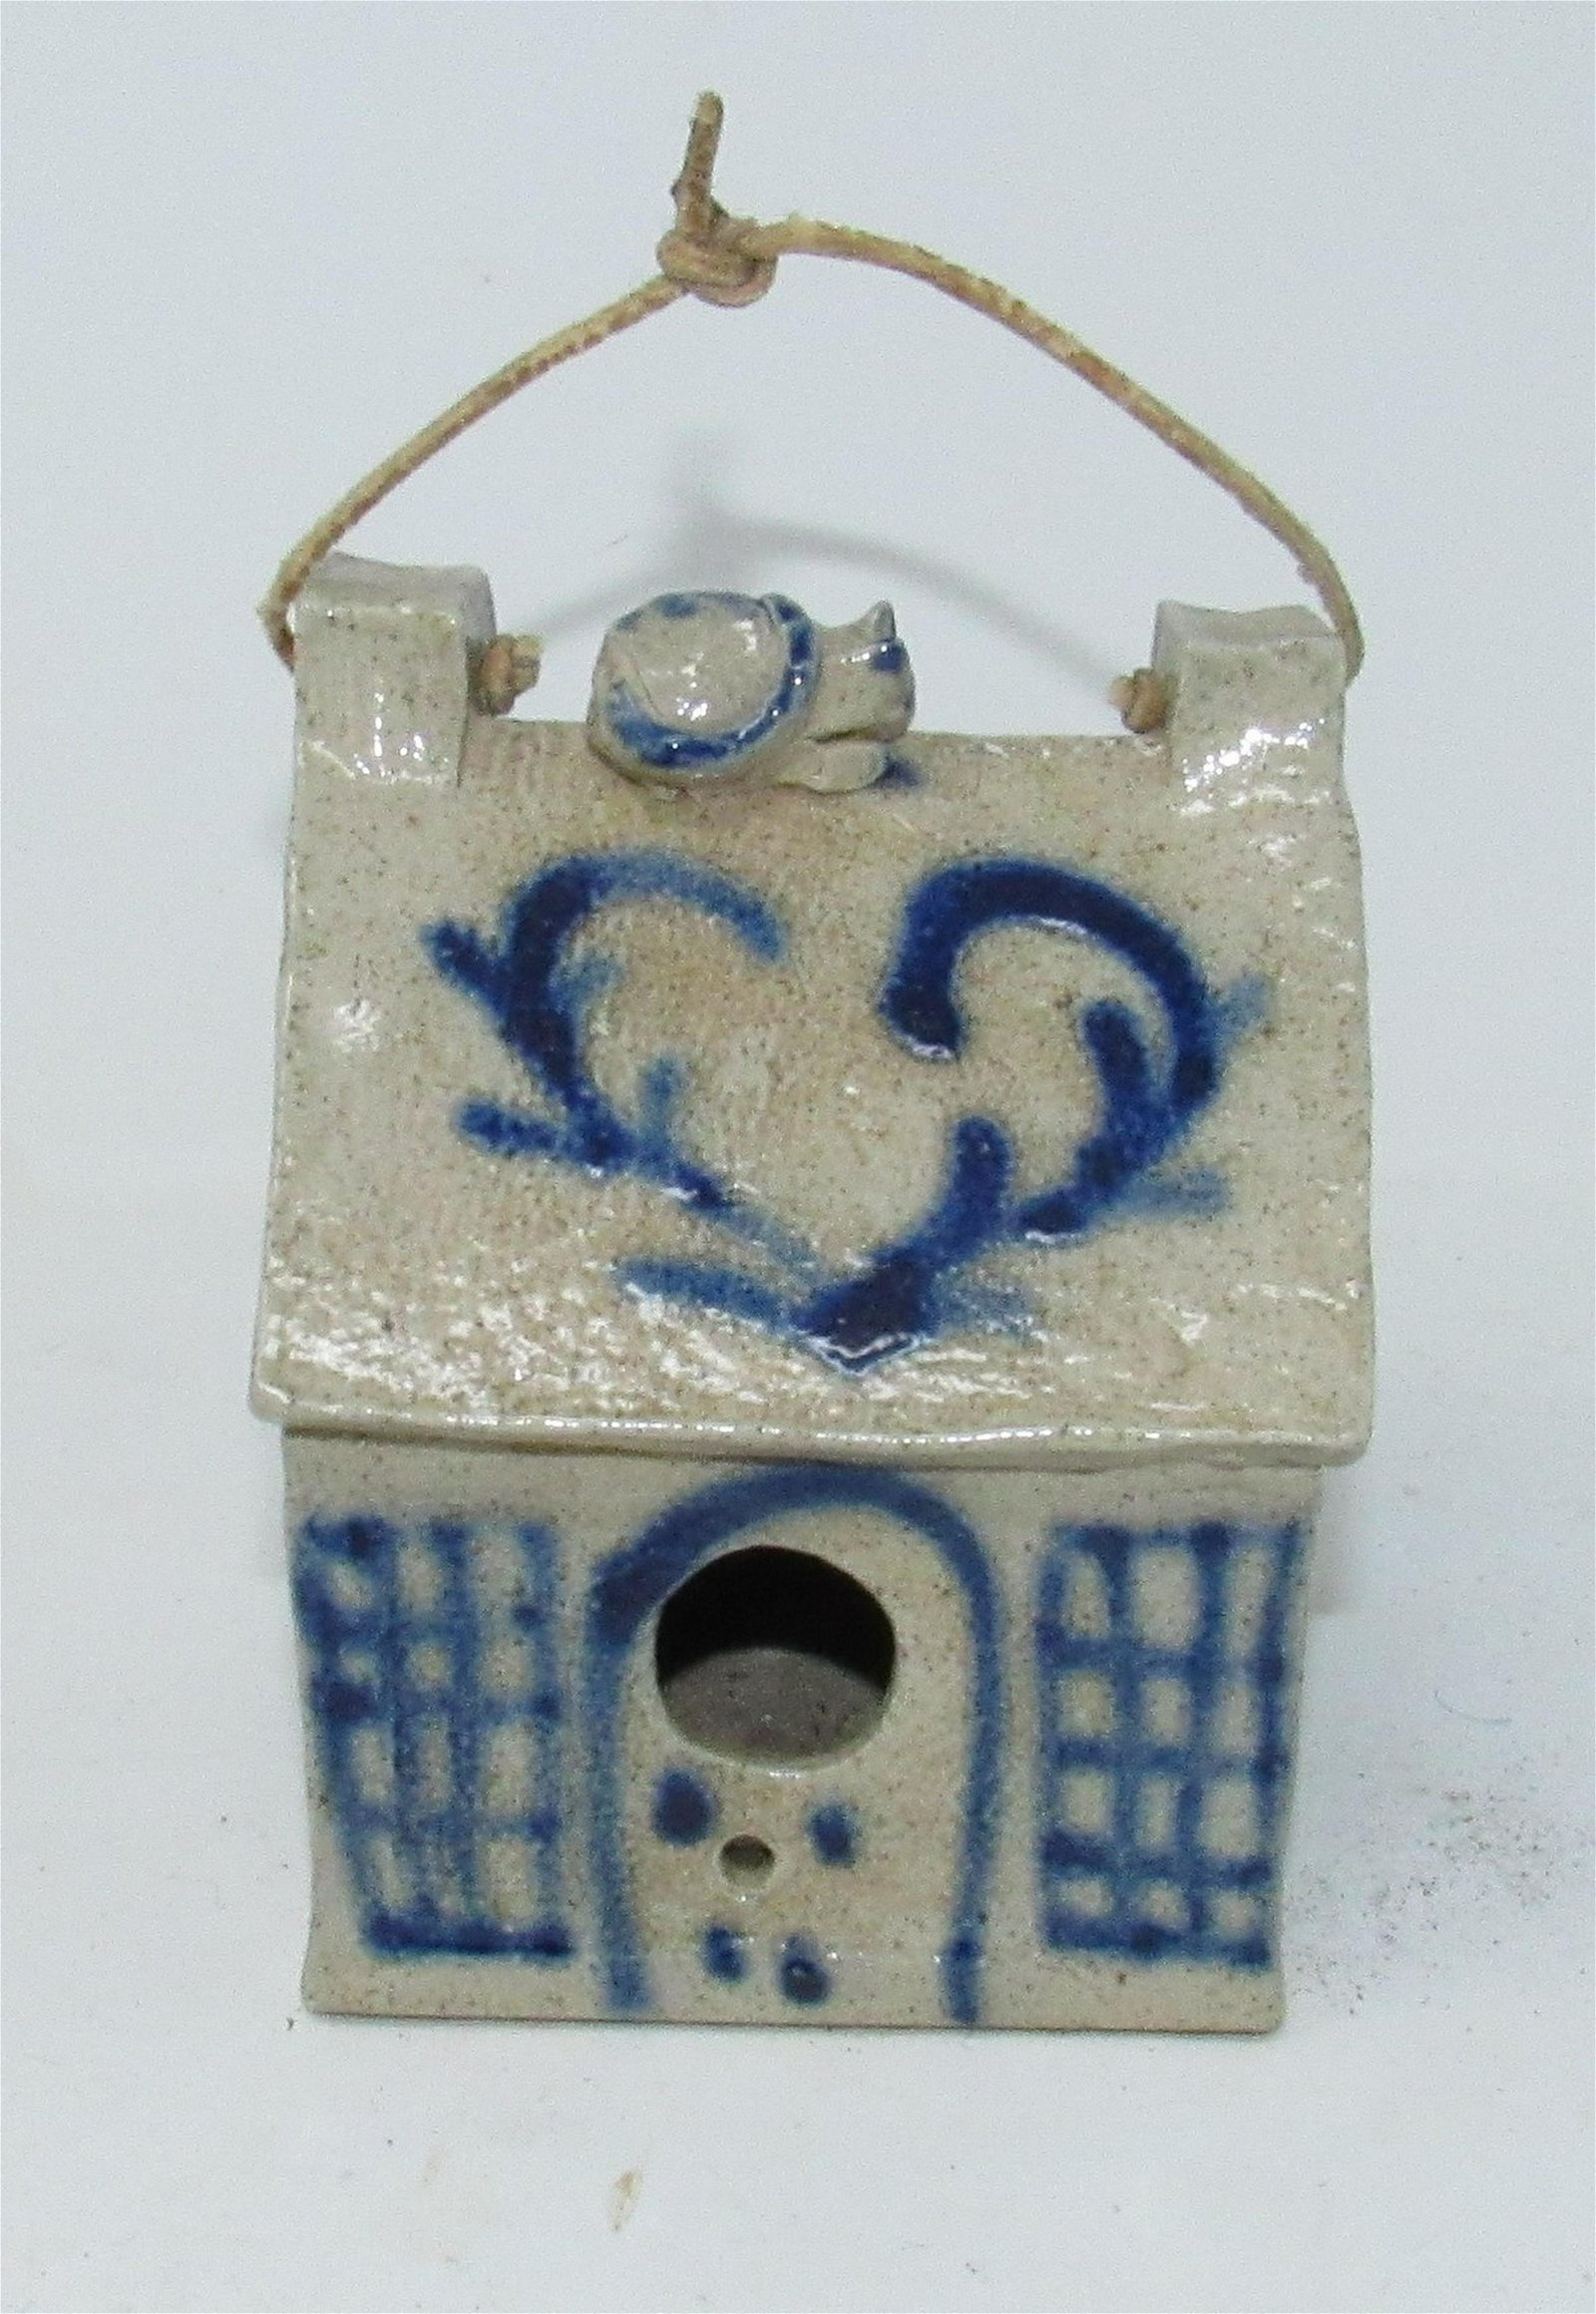 Pottery Birdhouse with Cat on Roof